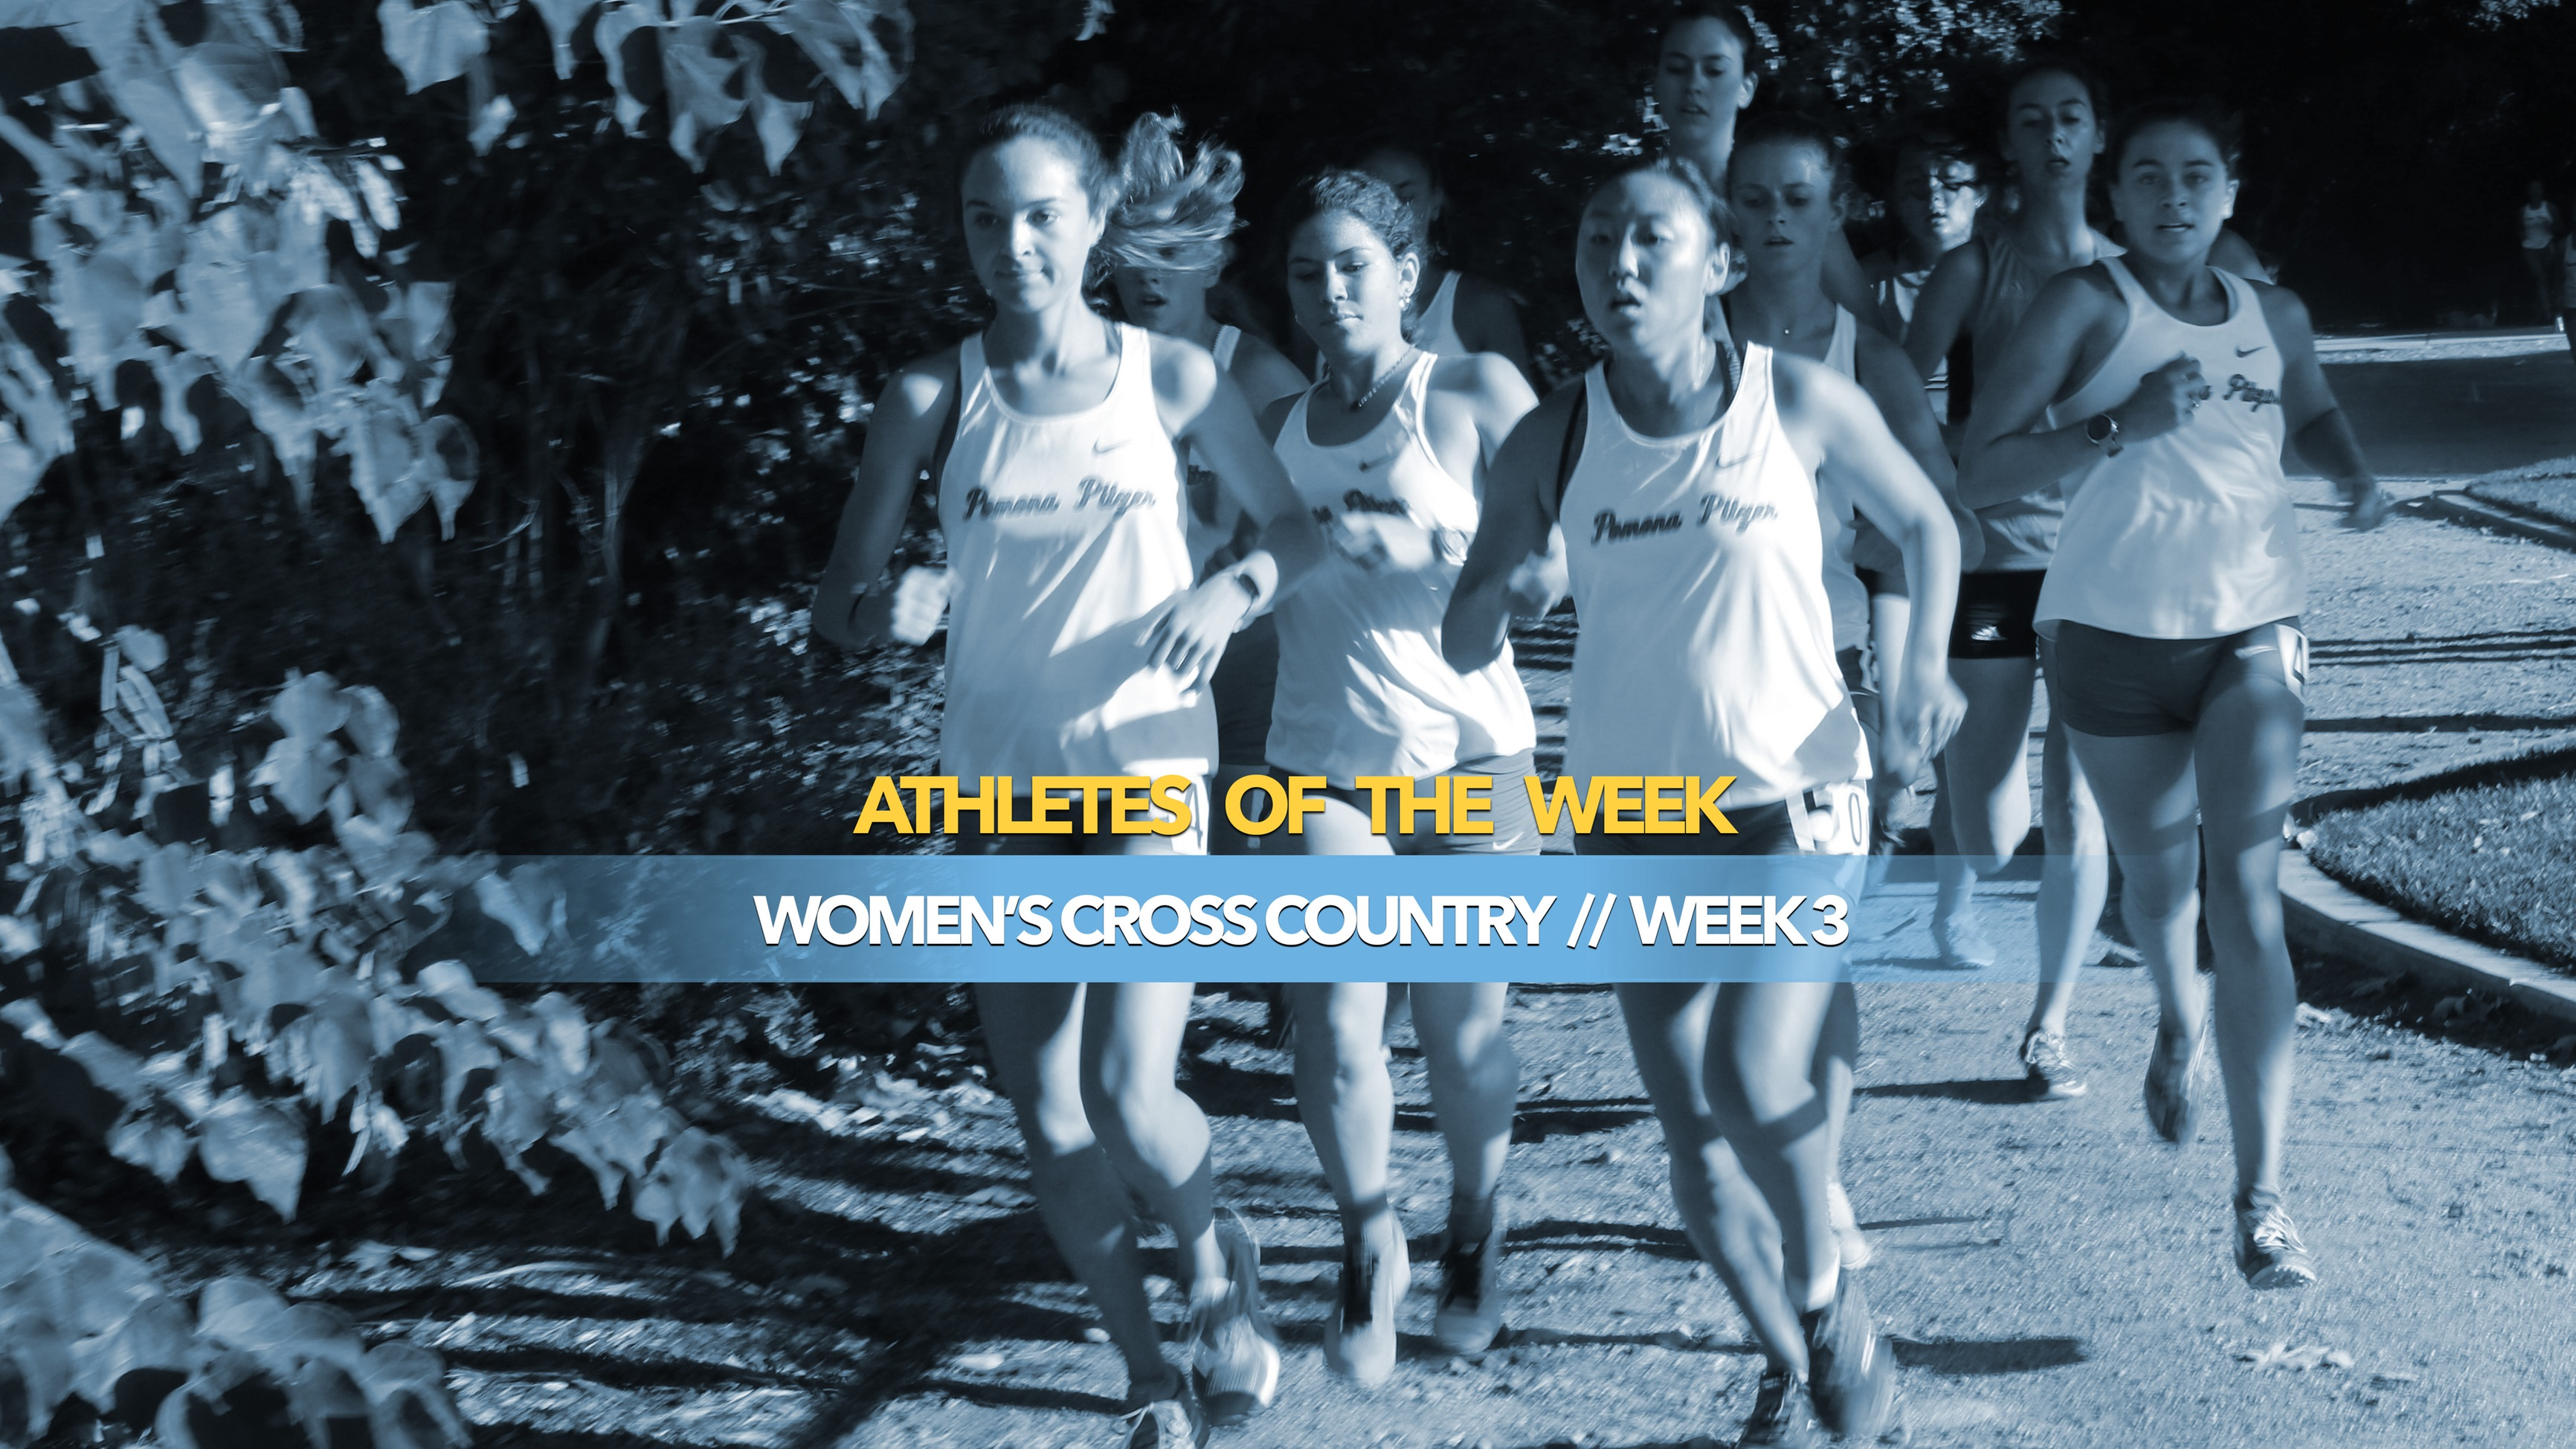 Women's Cross Country Athlete of the Week: September 16, 2019